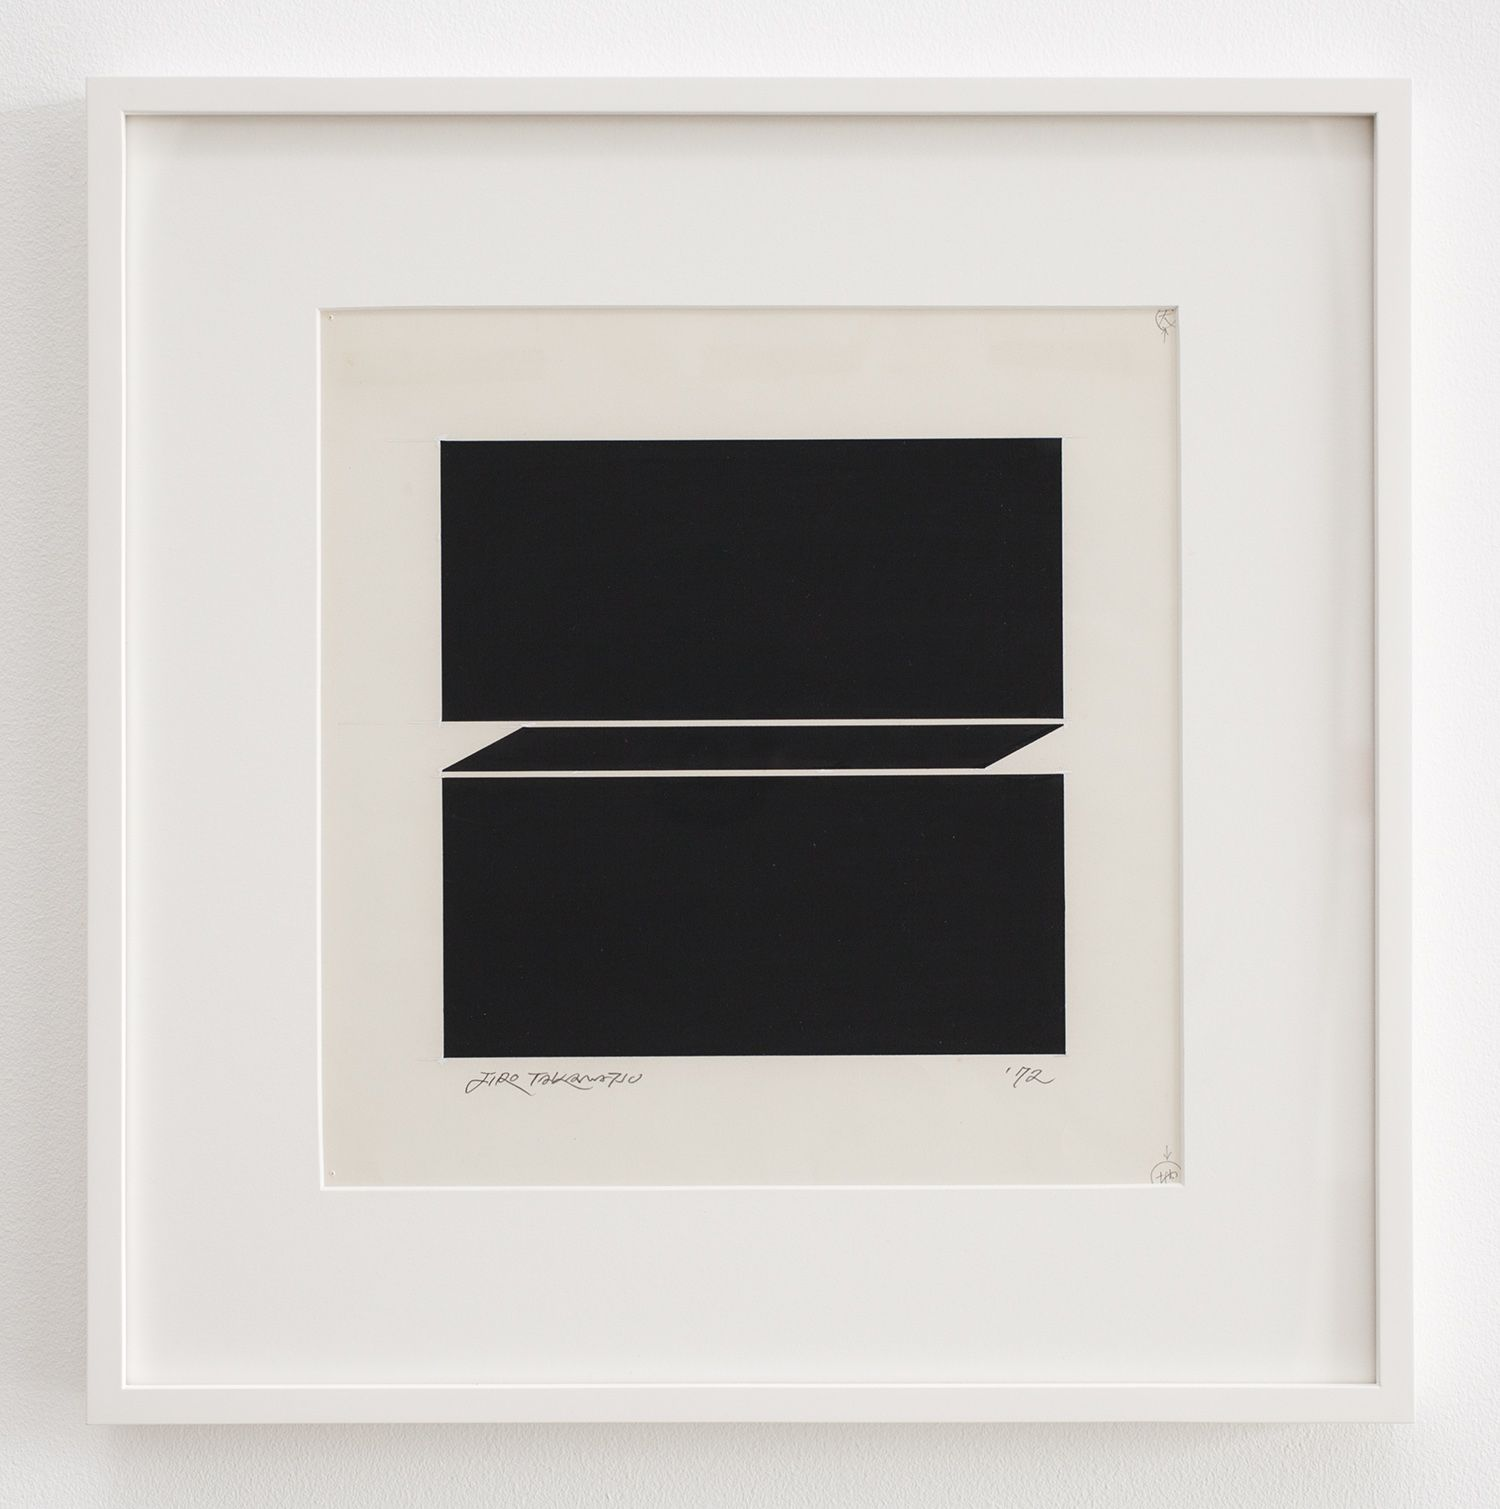 Jiro Takamatsu In the form of square, 1972